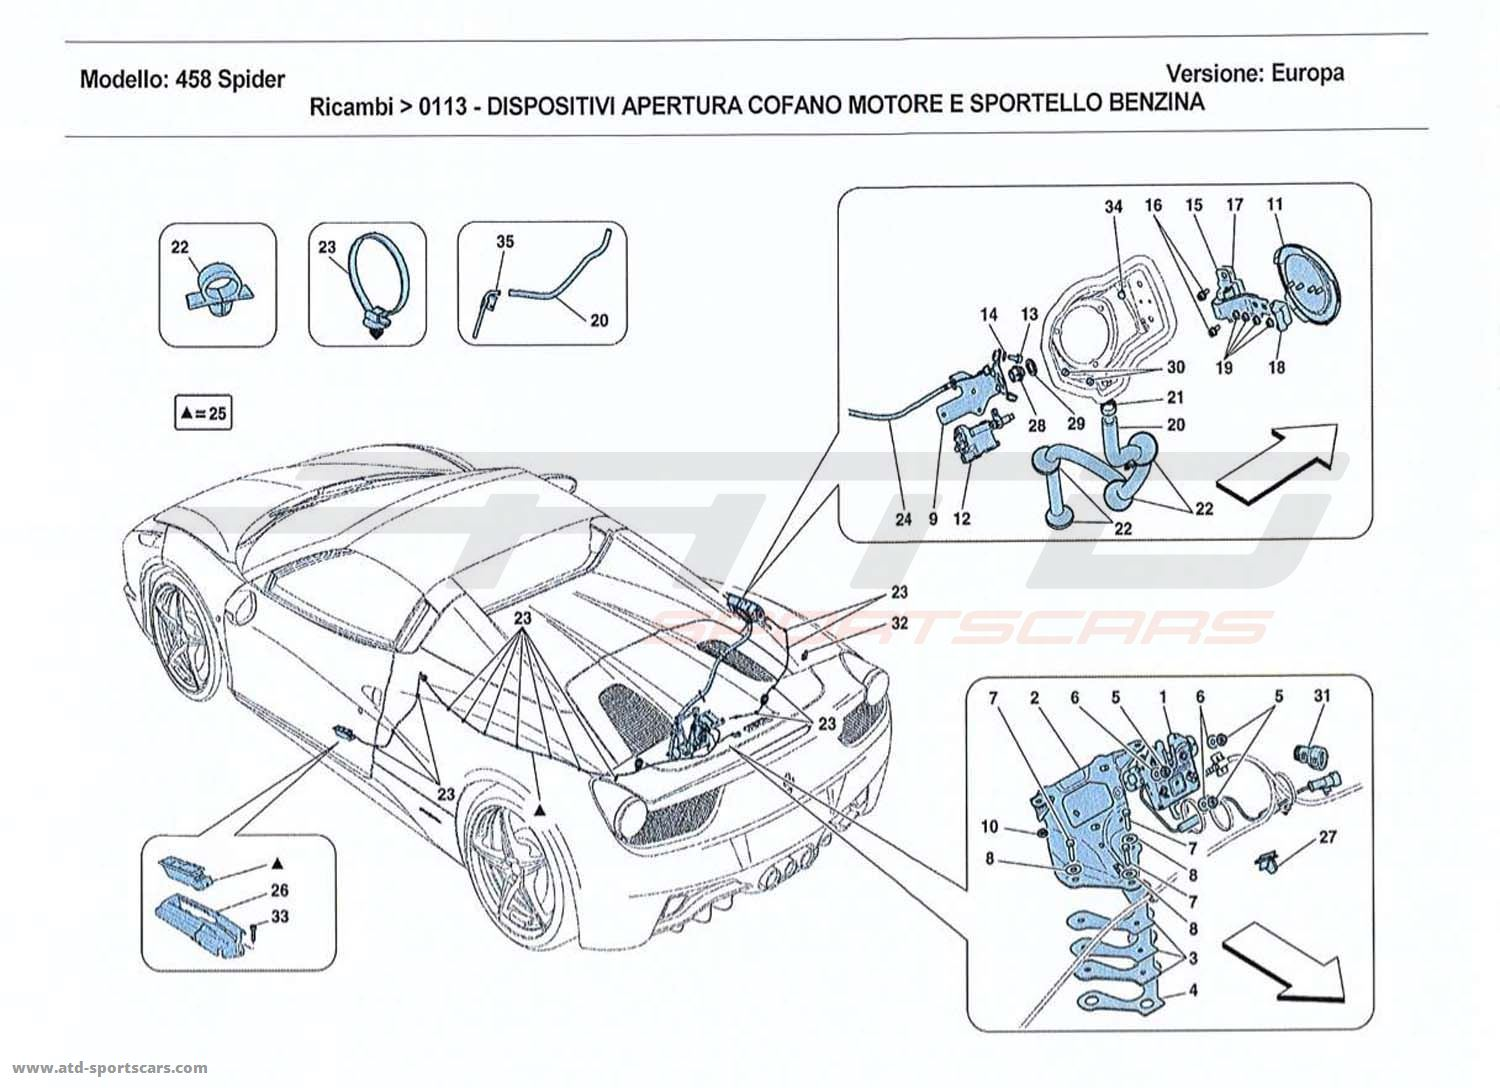 ENGINE COMPARTMENT LID AND FUEL FILLER FLAP OPENING MECHANISMS